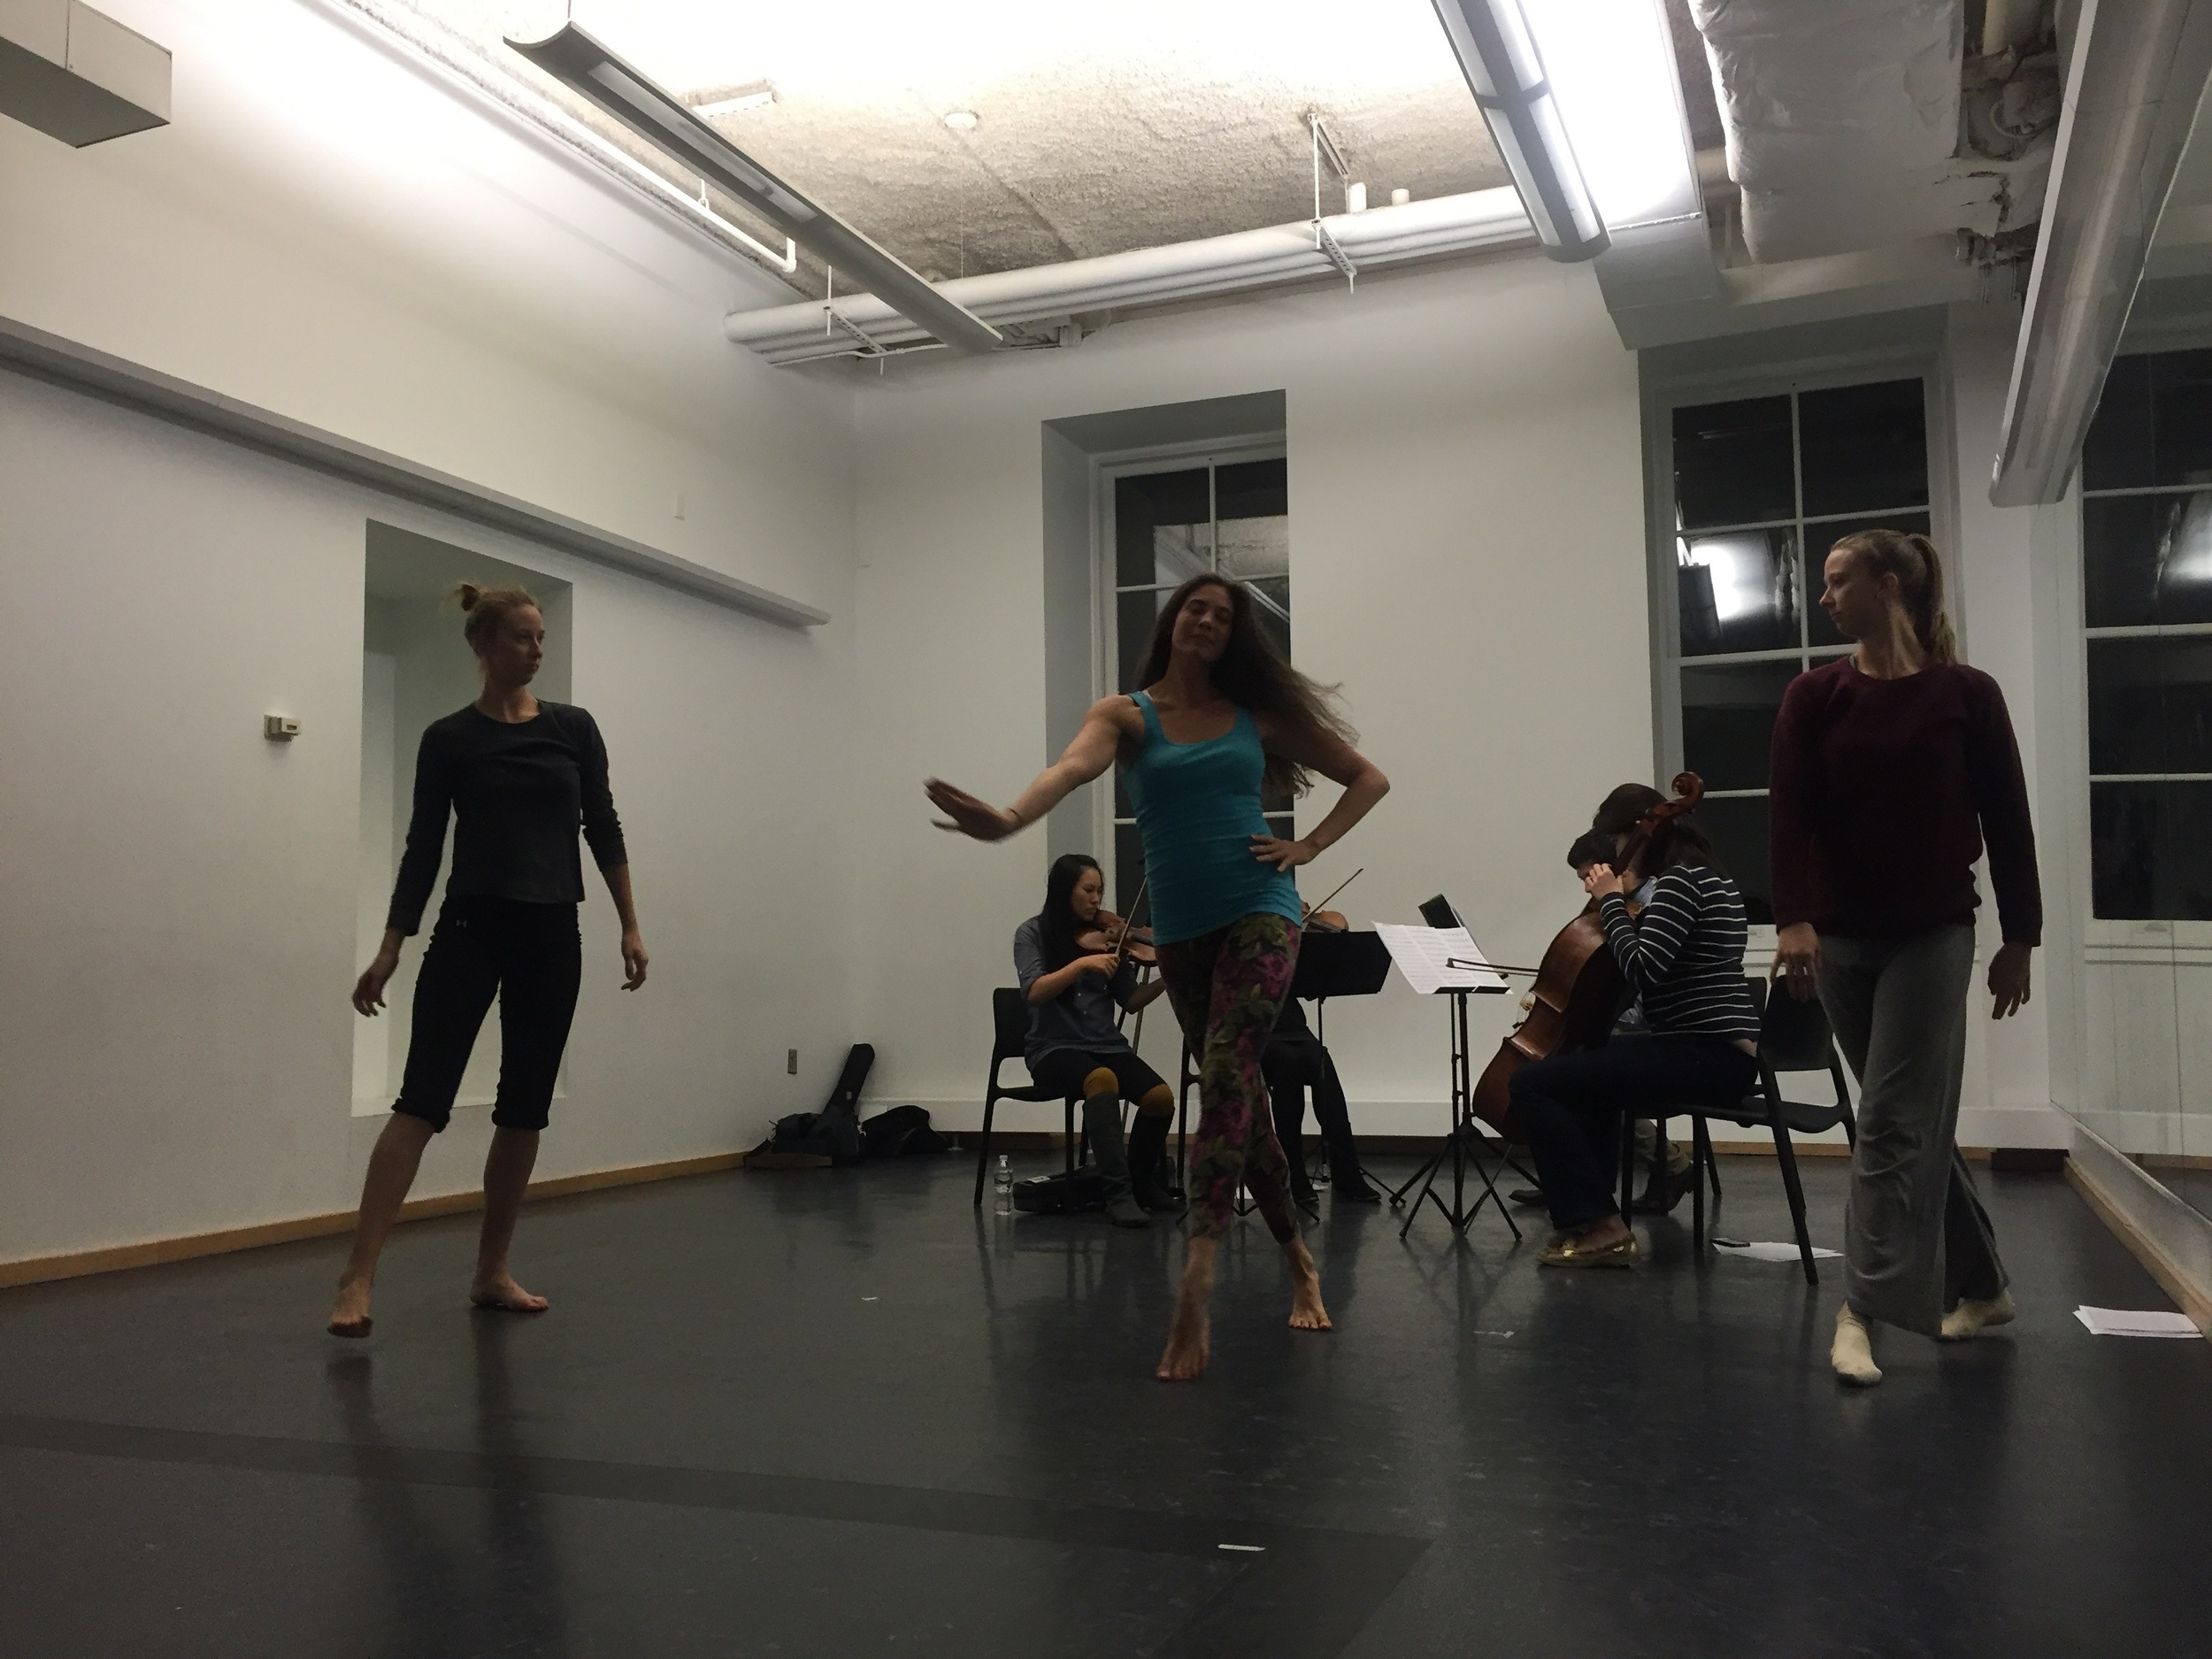 Hannah, Emily, and Gwen work with the string quartet during a Creative Session.